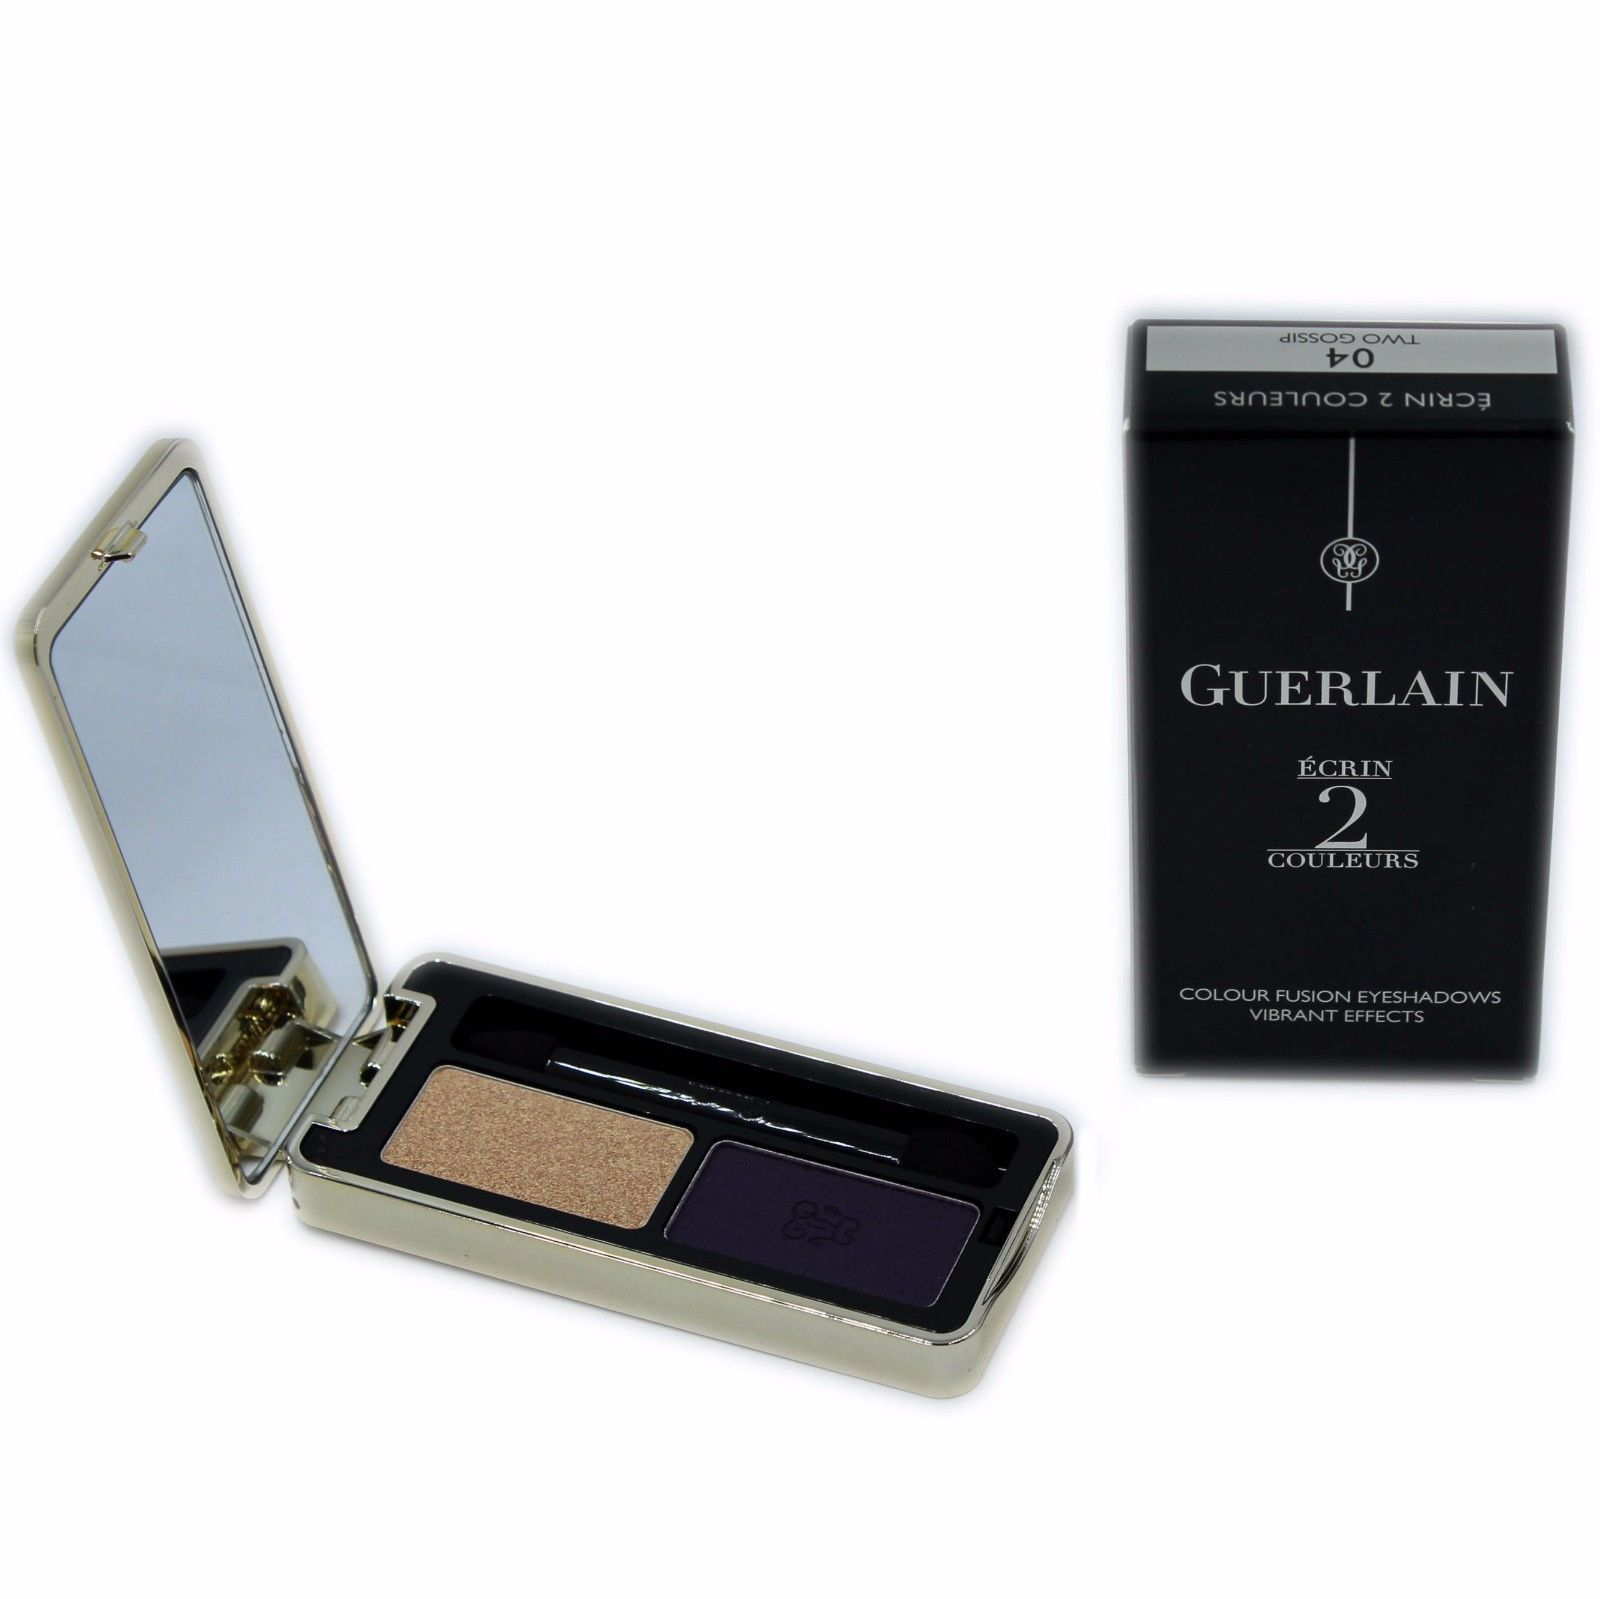 Primary image for GUERLAIN ECRIN 2 COULEURS COLOUR FUSION EYESHADOWS EFFETS VIBRANTS 4G #04-G4138